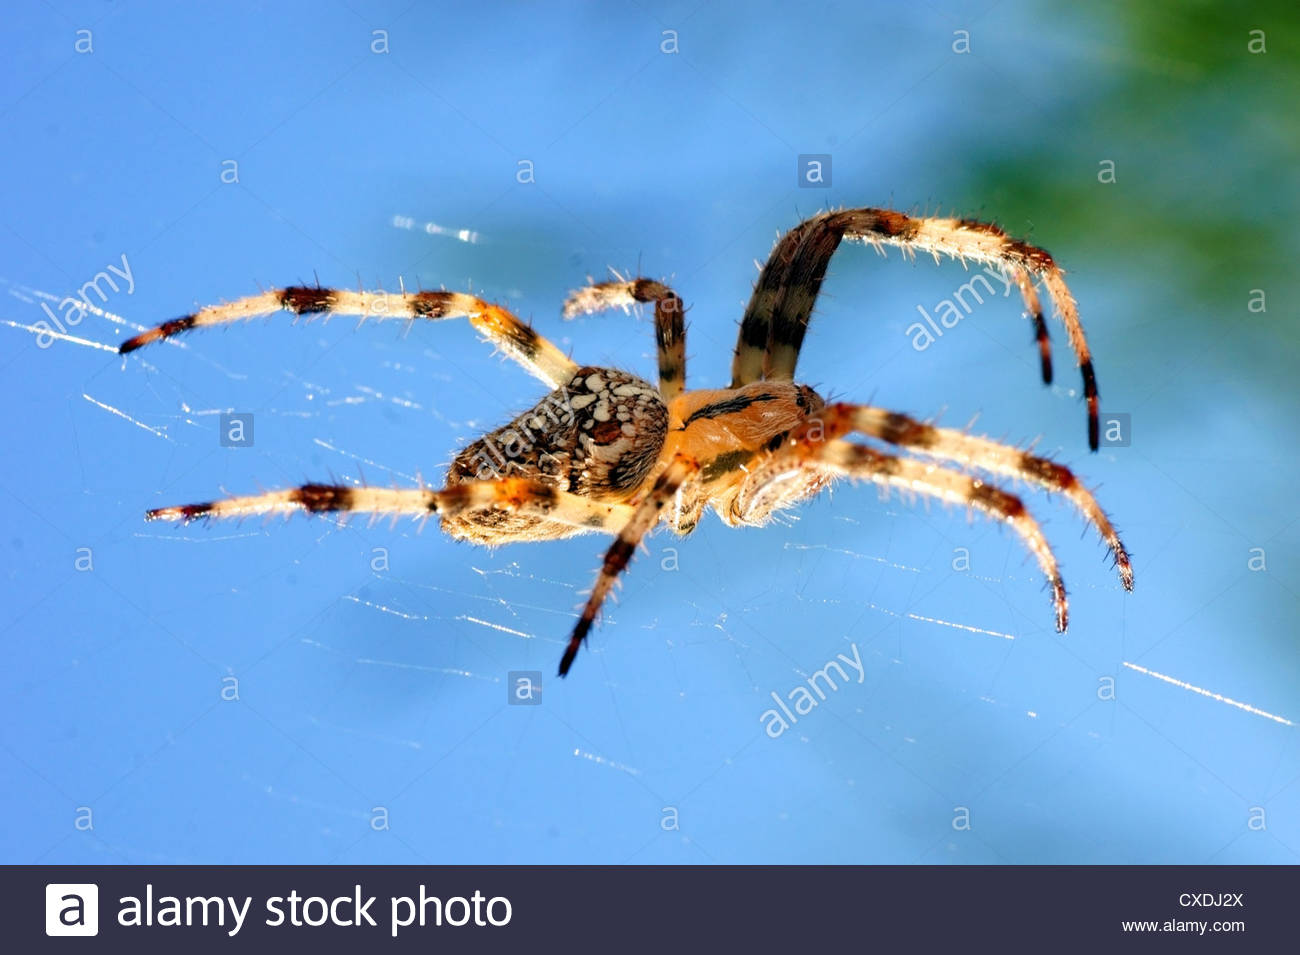 Spider stretching on his cobweb. Araneae order, arthropod, - Stock Image